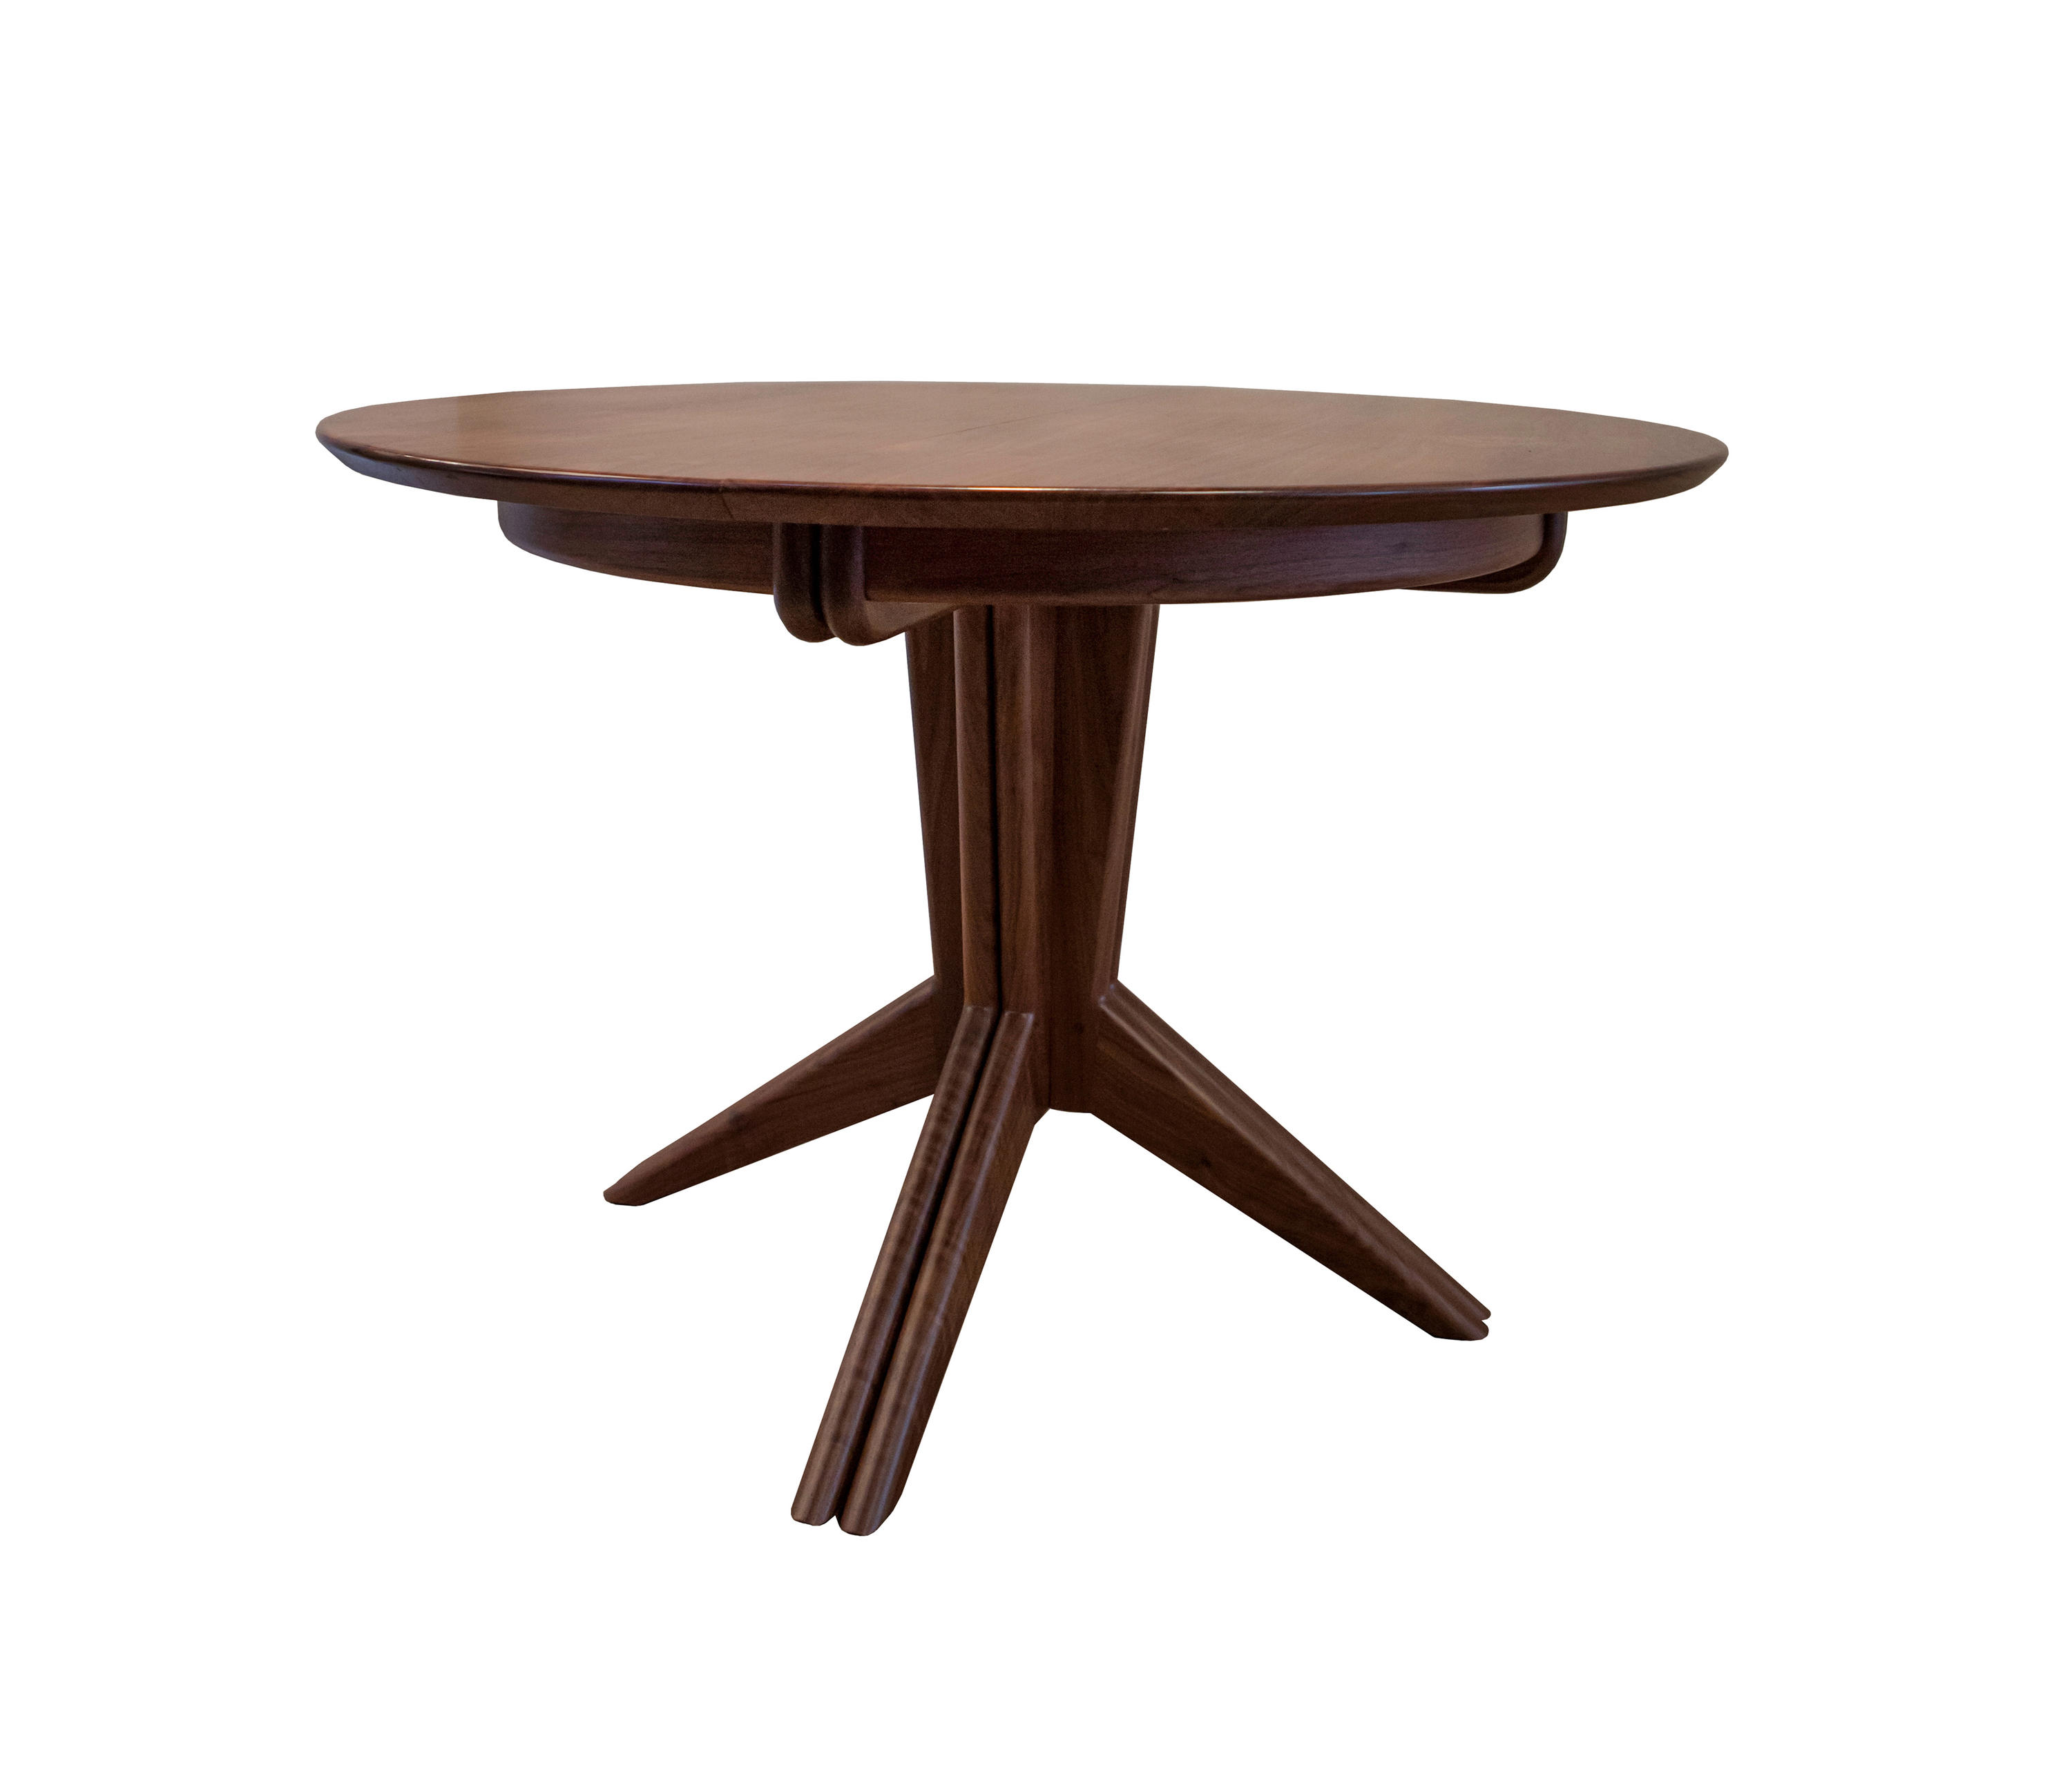 PEDESTAL EXTENSION DINING TABLE Dining tables from